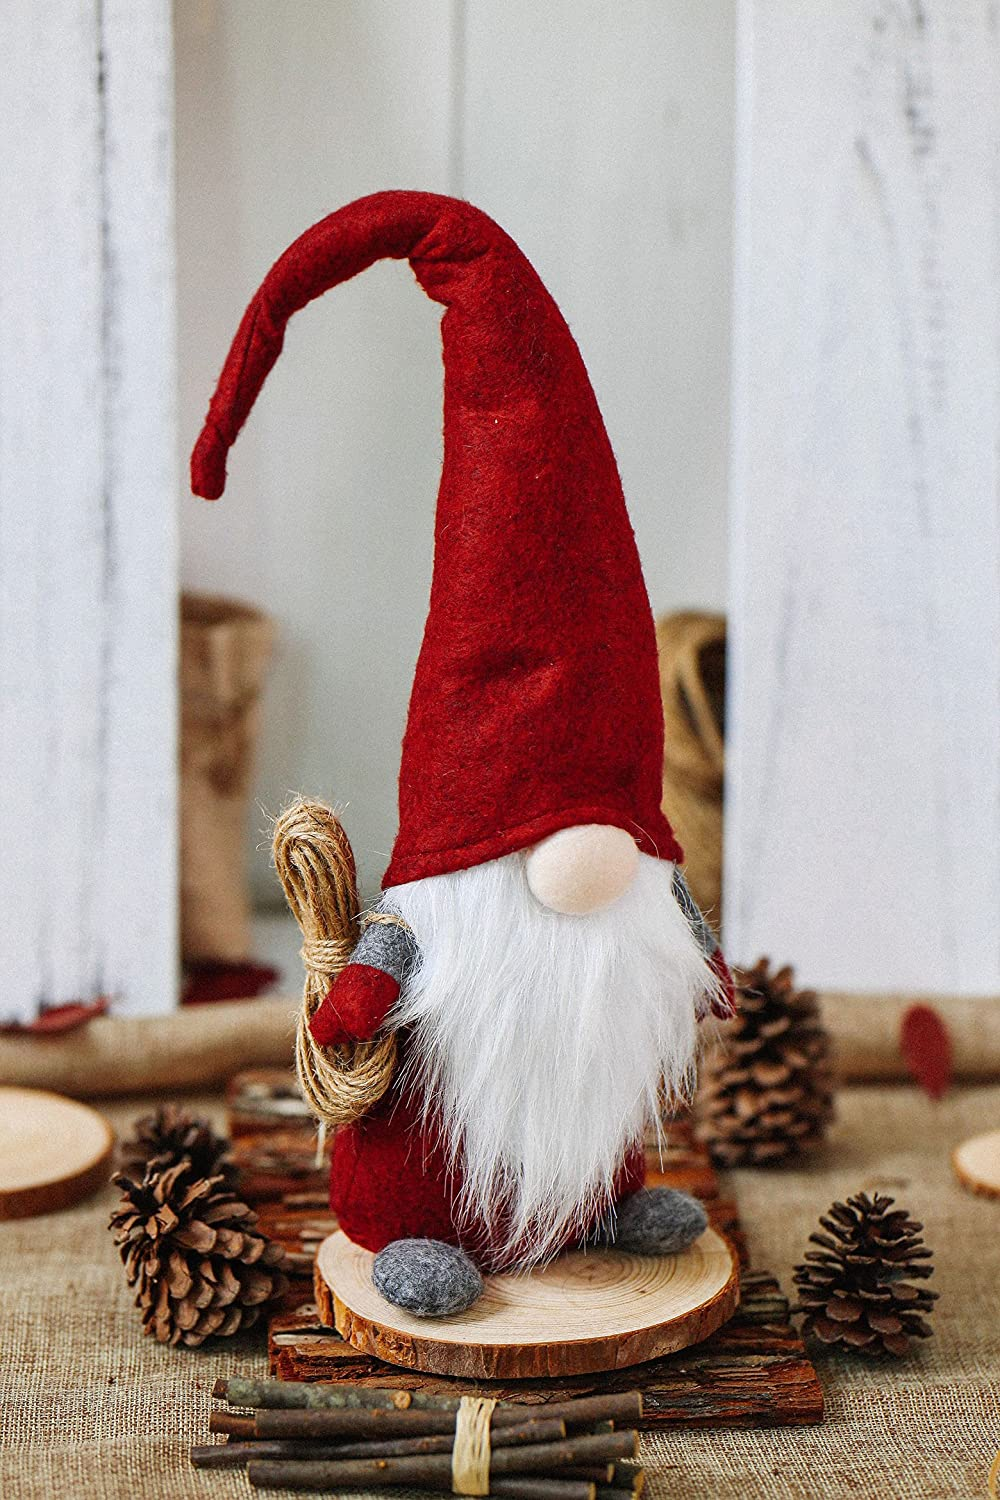 amazoncom itomte handmade swedish tomte santa scandinavian gnome plush figurines gnome elf ornaments home christmas decoration thanksgiving day - Gnome Christmas Decorations